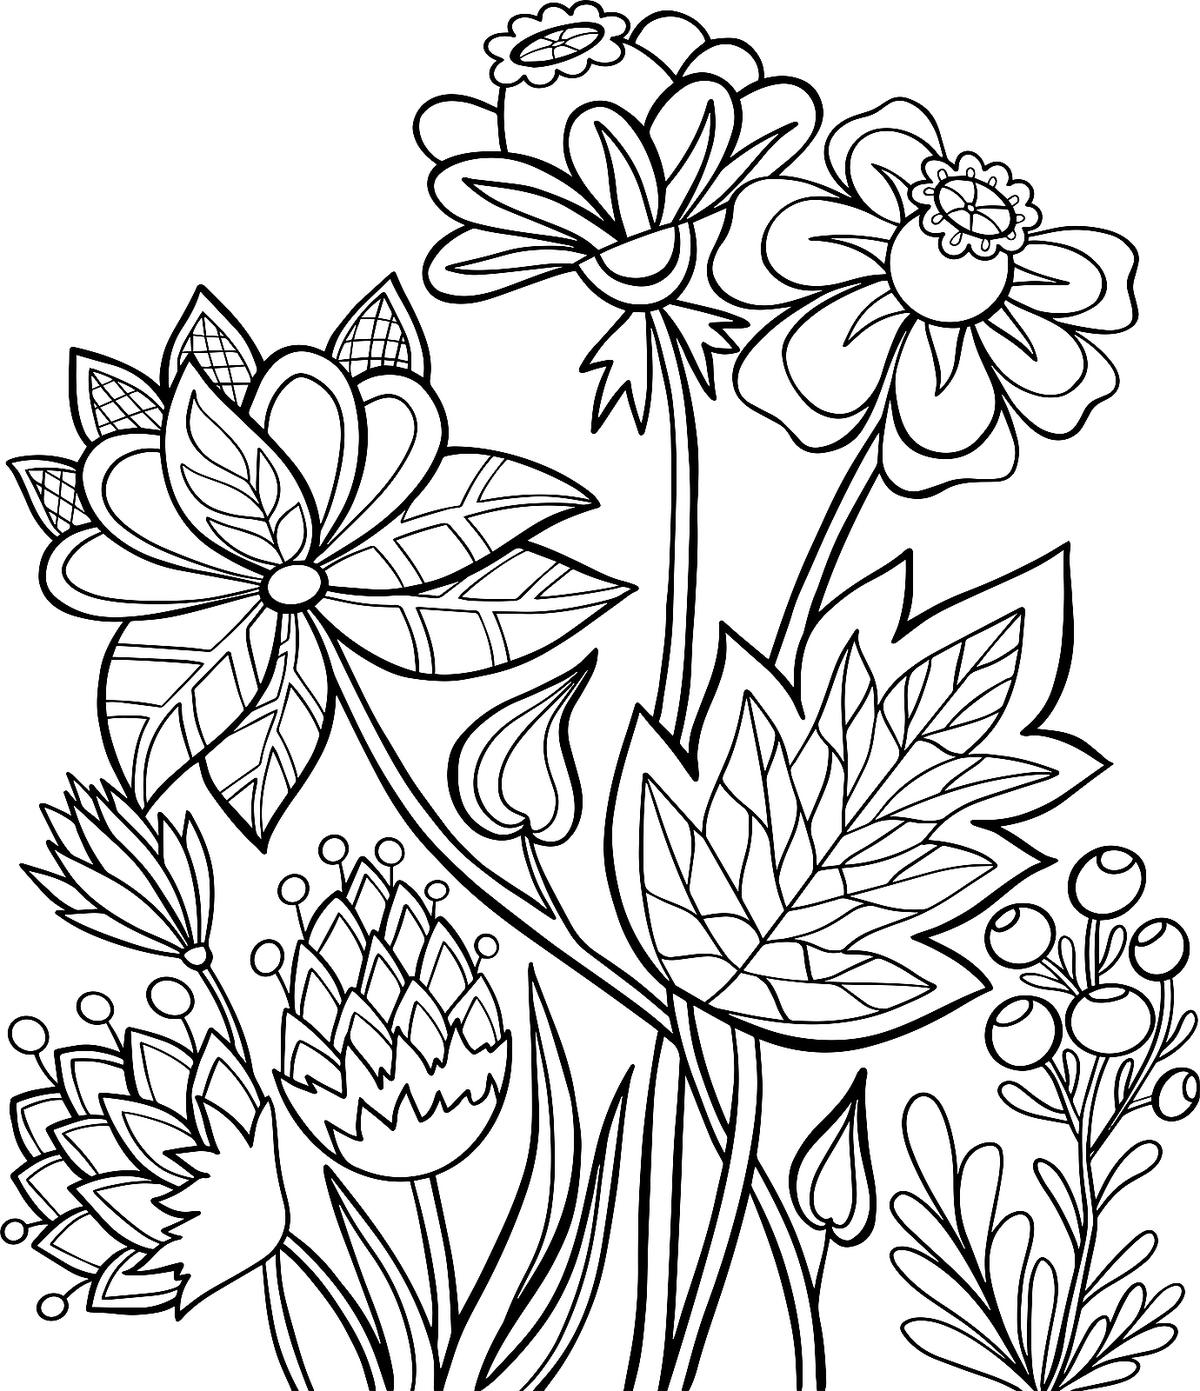 flower coloring pages printables free printable flower coloring pages for kids best printables pages coloring flower